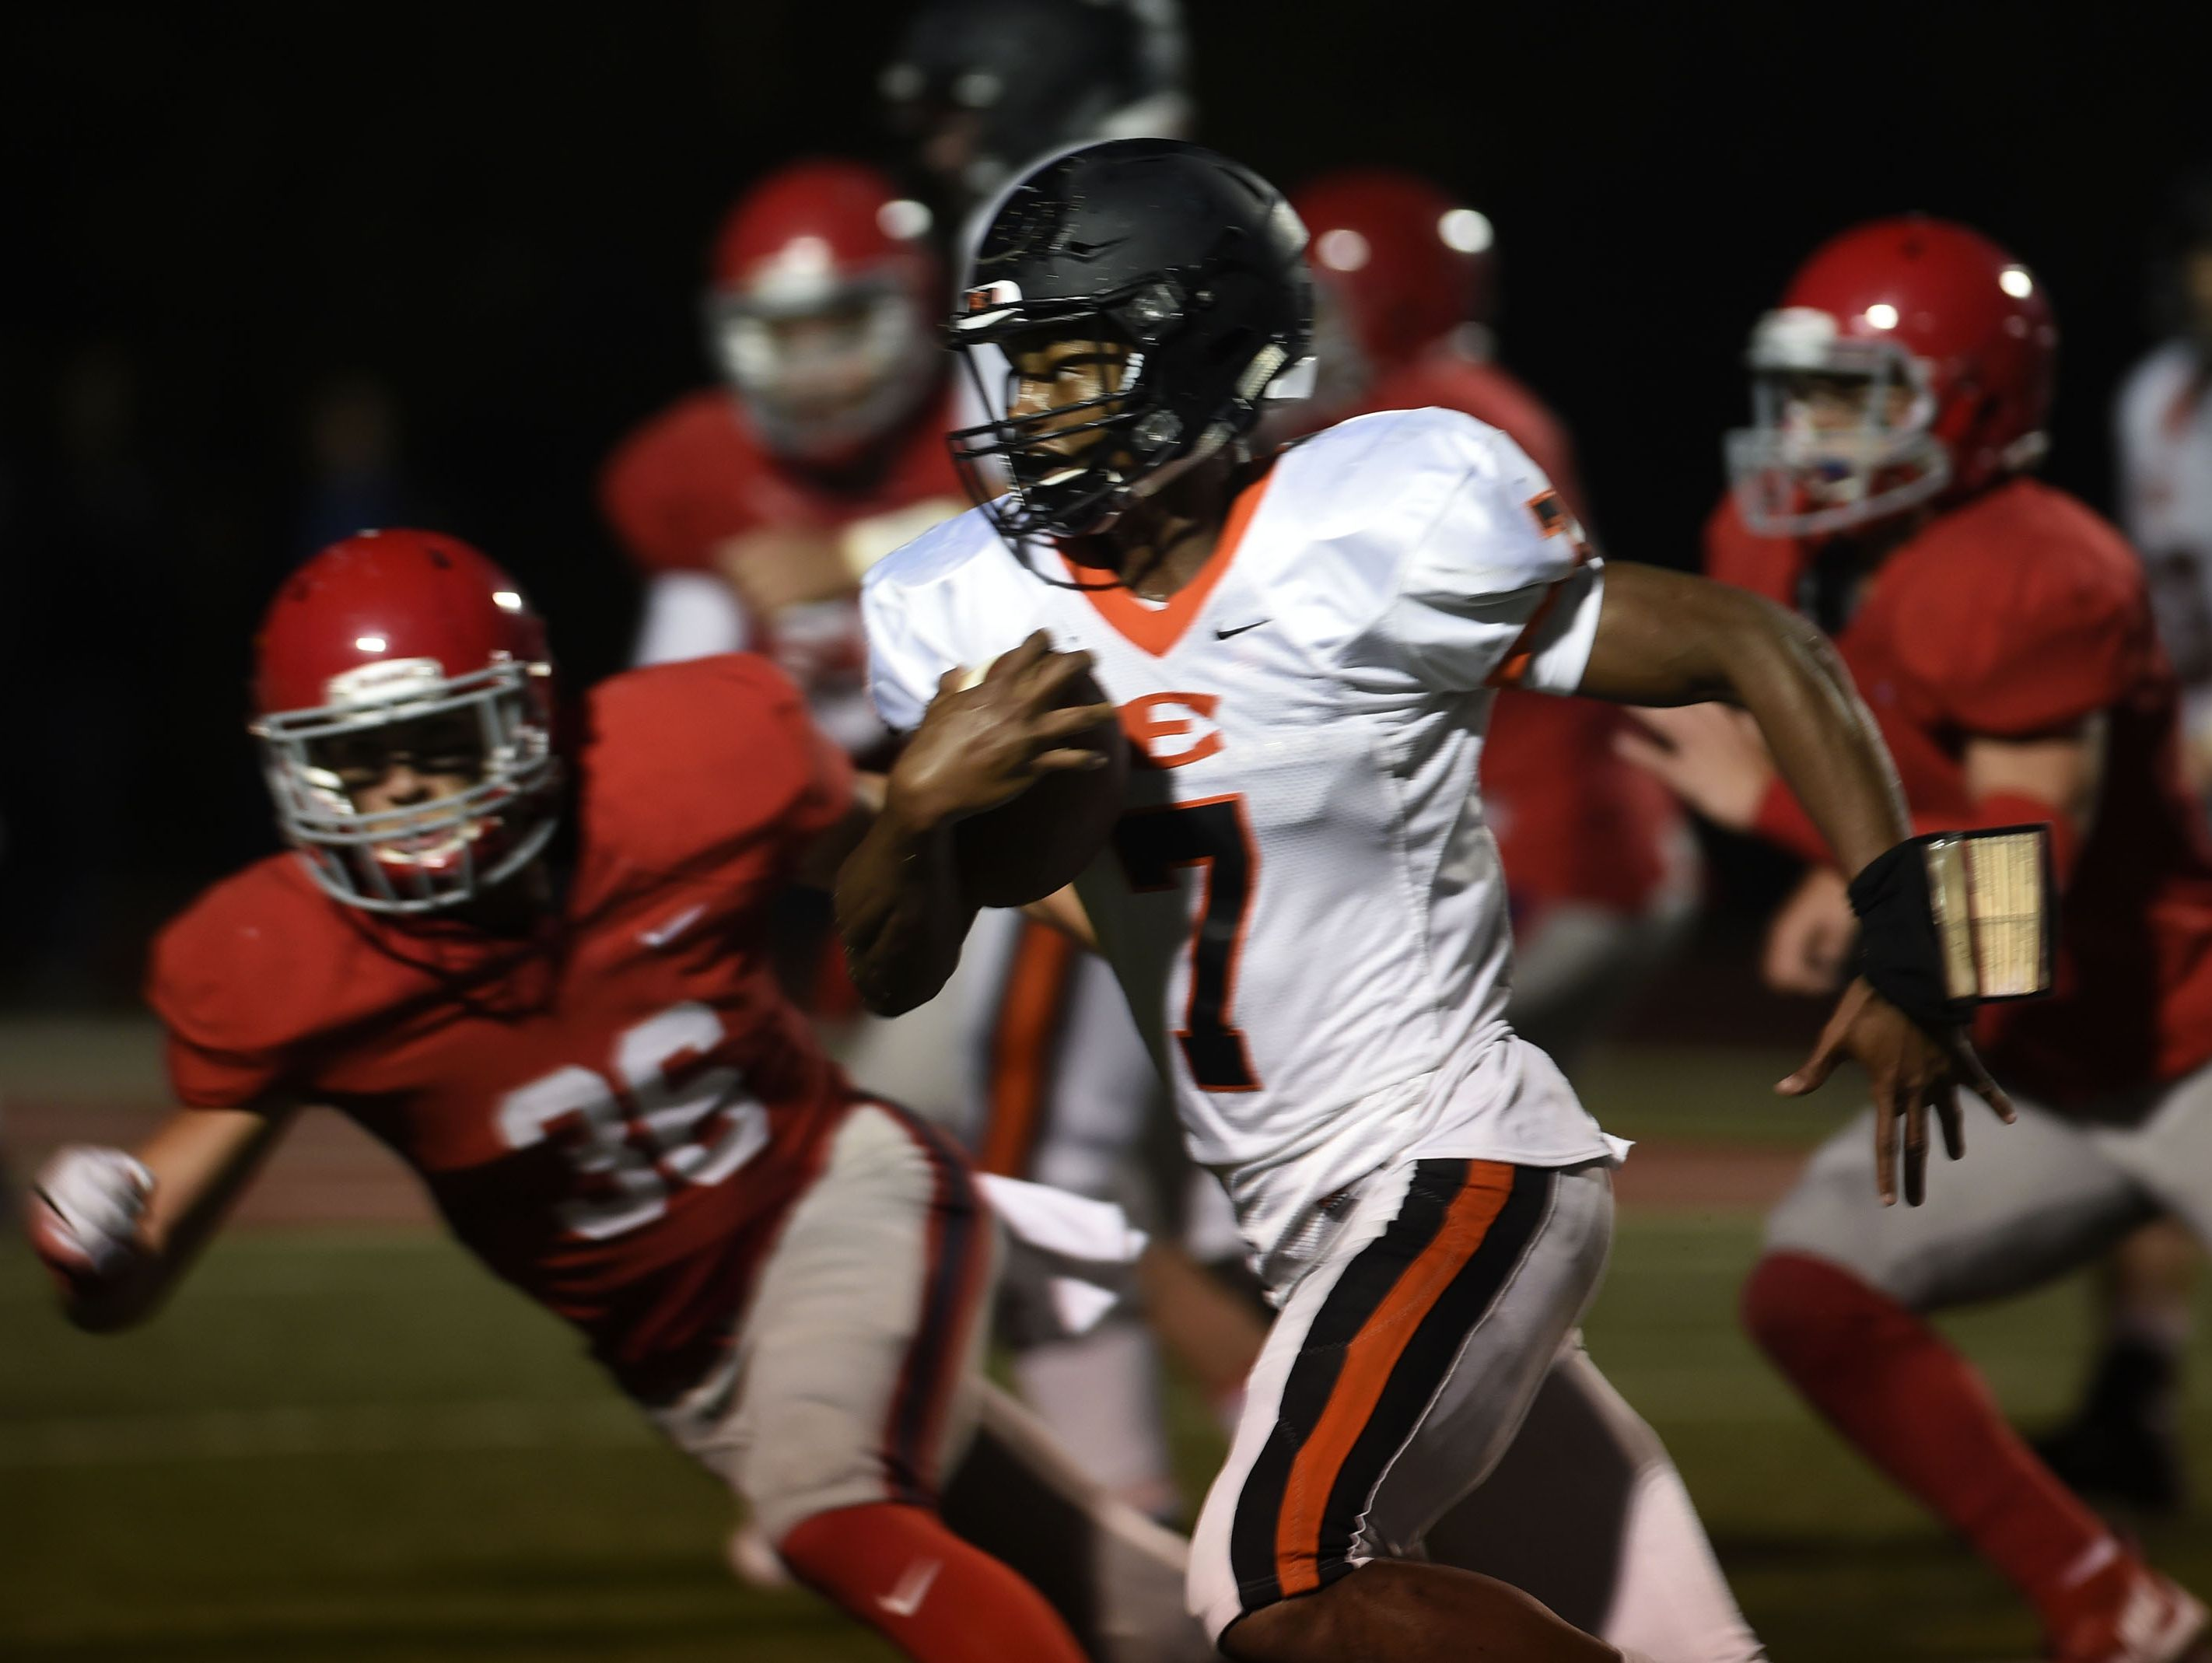 Ensworth quarterback Jaylon King accounted for four total touchdowns in Friday's win over McCallie.